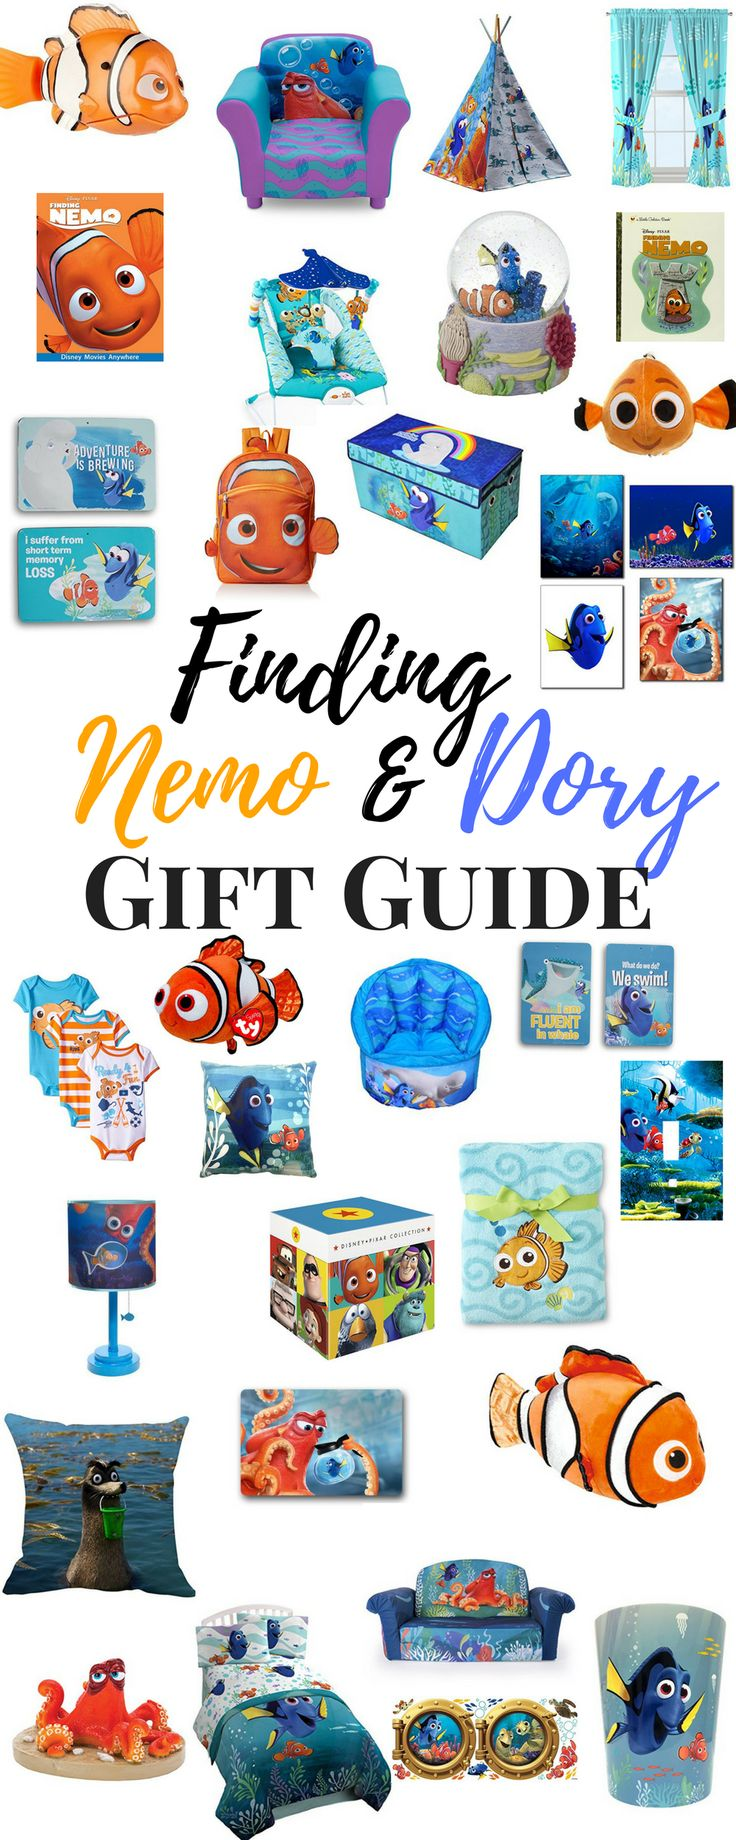 Finding Nemo Gift Ideas - Finding Dory Gift Ideas Whether you're looking Finding Nemo Party Ideas, Finding Dory party ideas, decorating a room in Finding Nemo, or just looking for the perfect Finding Nemo Gift Ideas, here is a list of some of our favorites!